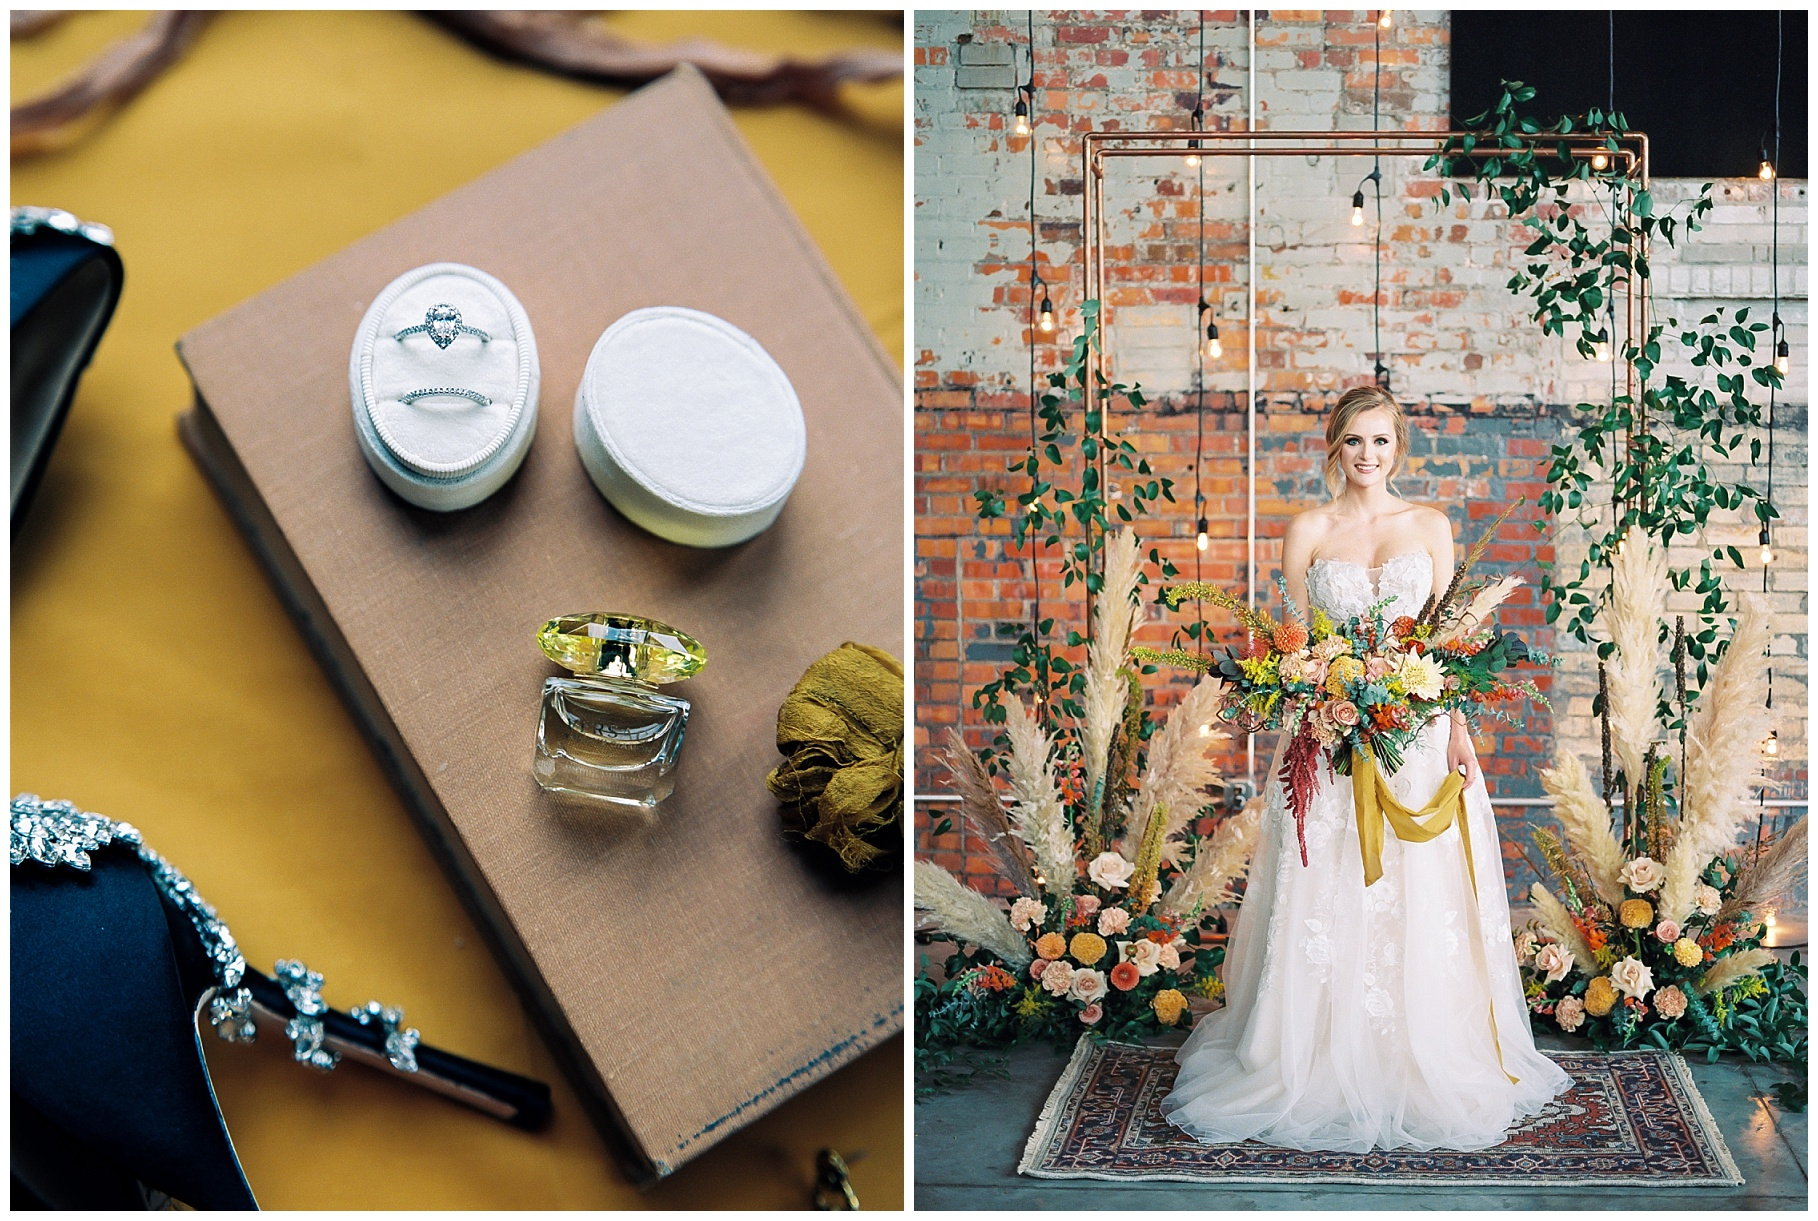 Urban Romance Wedding with Copper Accents at The Millbottom by Kelsi Kliethermes Photography Best Columbia Missouri Wedding Photographer_0033.jpg